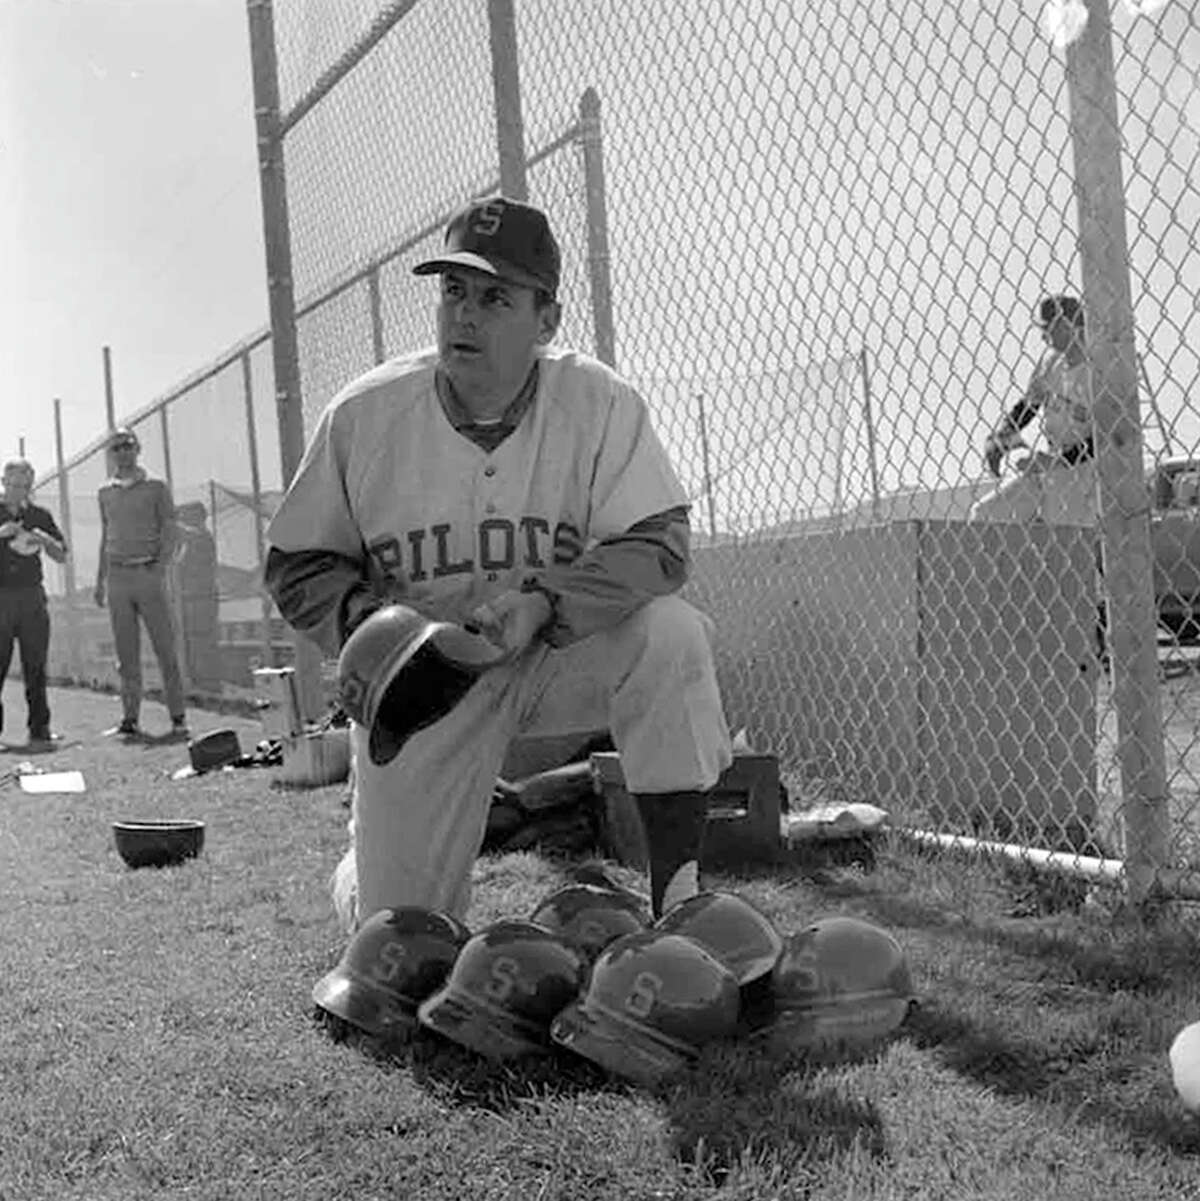 This 1969 picture from Tempe, Ariz., was taken at spring training for the Seattle Pilots, the city's first Major League baseball team. This collection of Pilots negatives was stored uncategorized in the P-I archive for decades and uncovered in summer 2012. The images - most of which were not previously published - were scanned by the Museum of History and Industry, which has preserved P-I negatives after several large donations since 1976. MOHAI's new South Lake Union location opens to the public Dec. 29.